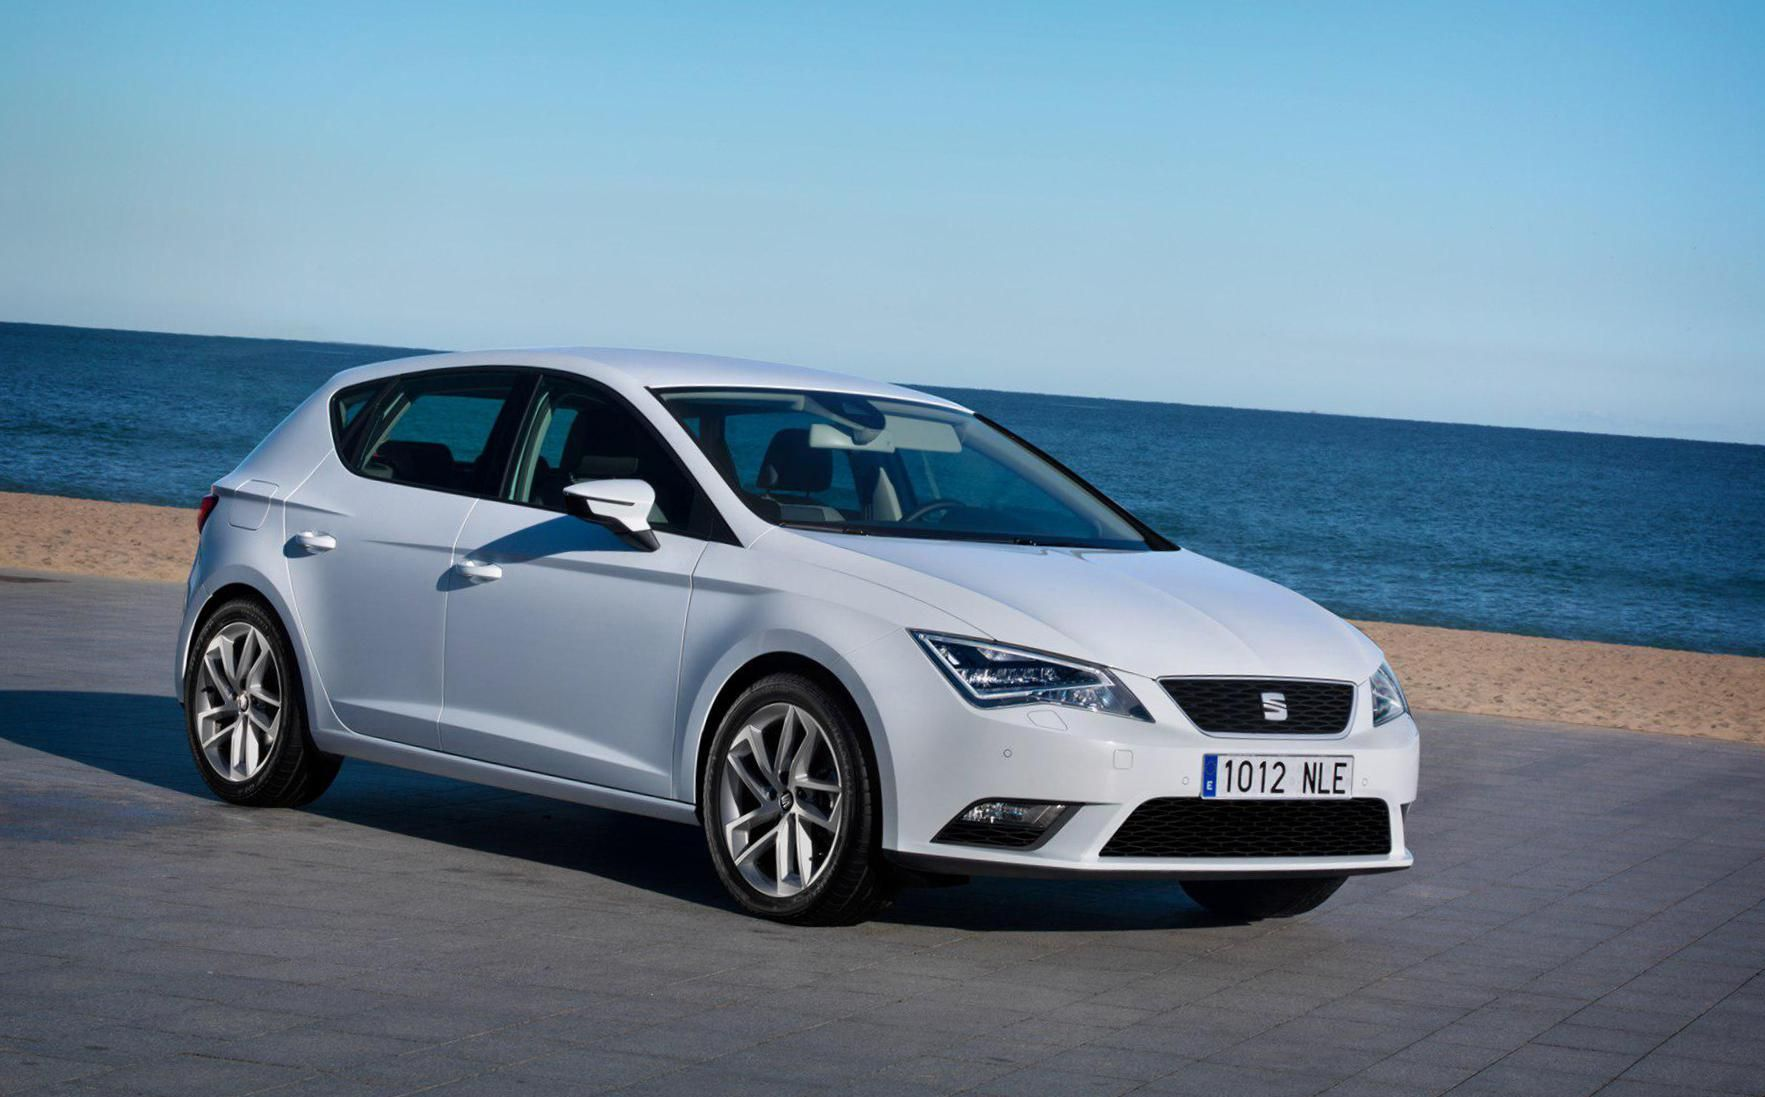 Seat Leon Mk2 Fr Down And Out Stickers Rear New Car Decals Racing Style Design [ 1146 x 1146 Pixel ]